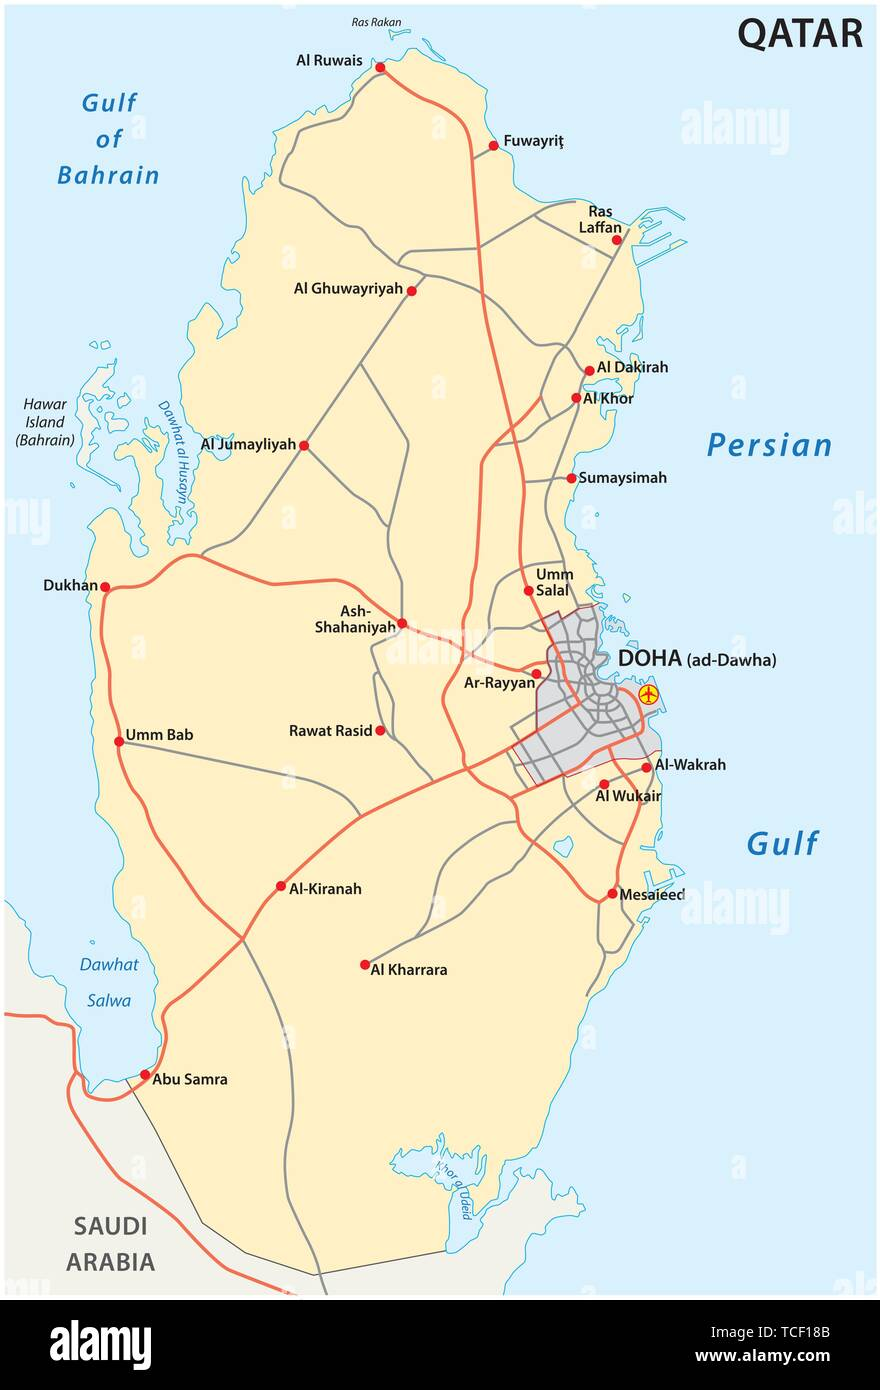 bahrain road map download Road Map Of The States Of Qatar Stock Vector Image Art Alamy bahrain road map download